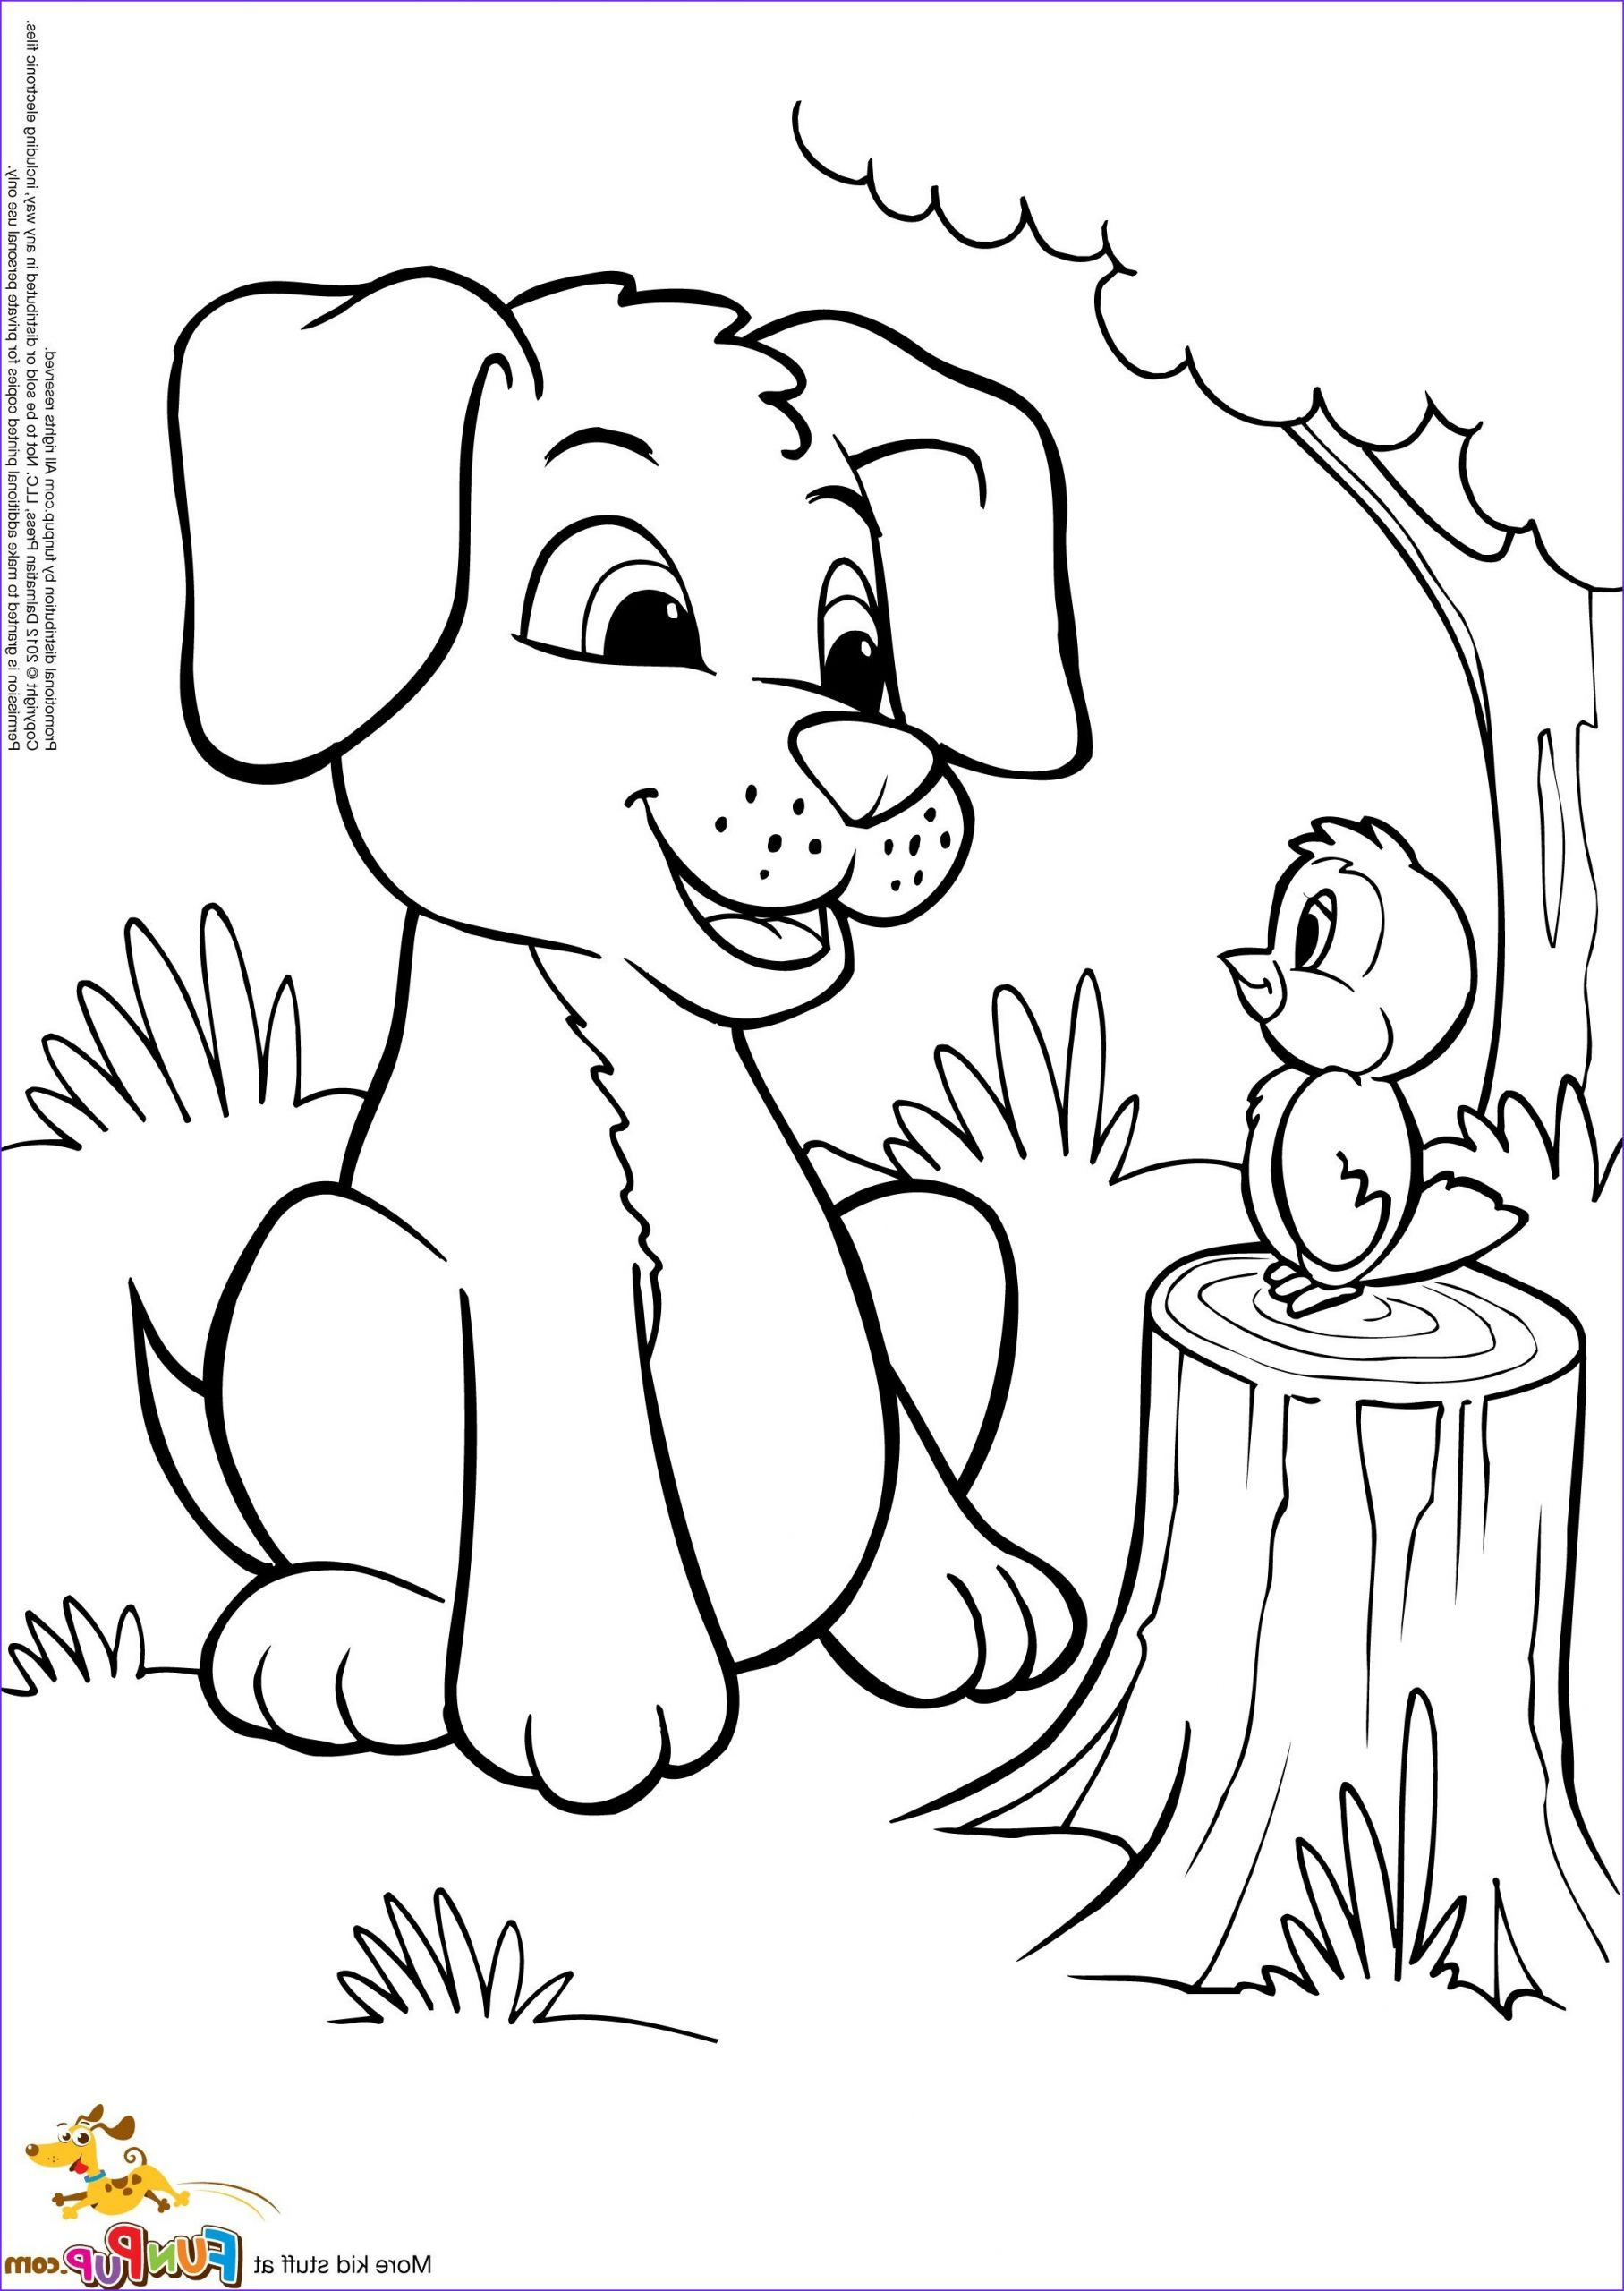 Puppies Colouring Pages Puppy Coloring Pages Dog Coloring Page Horse Coloring Pages